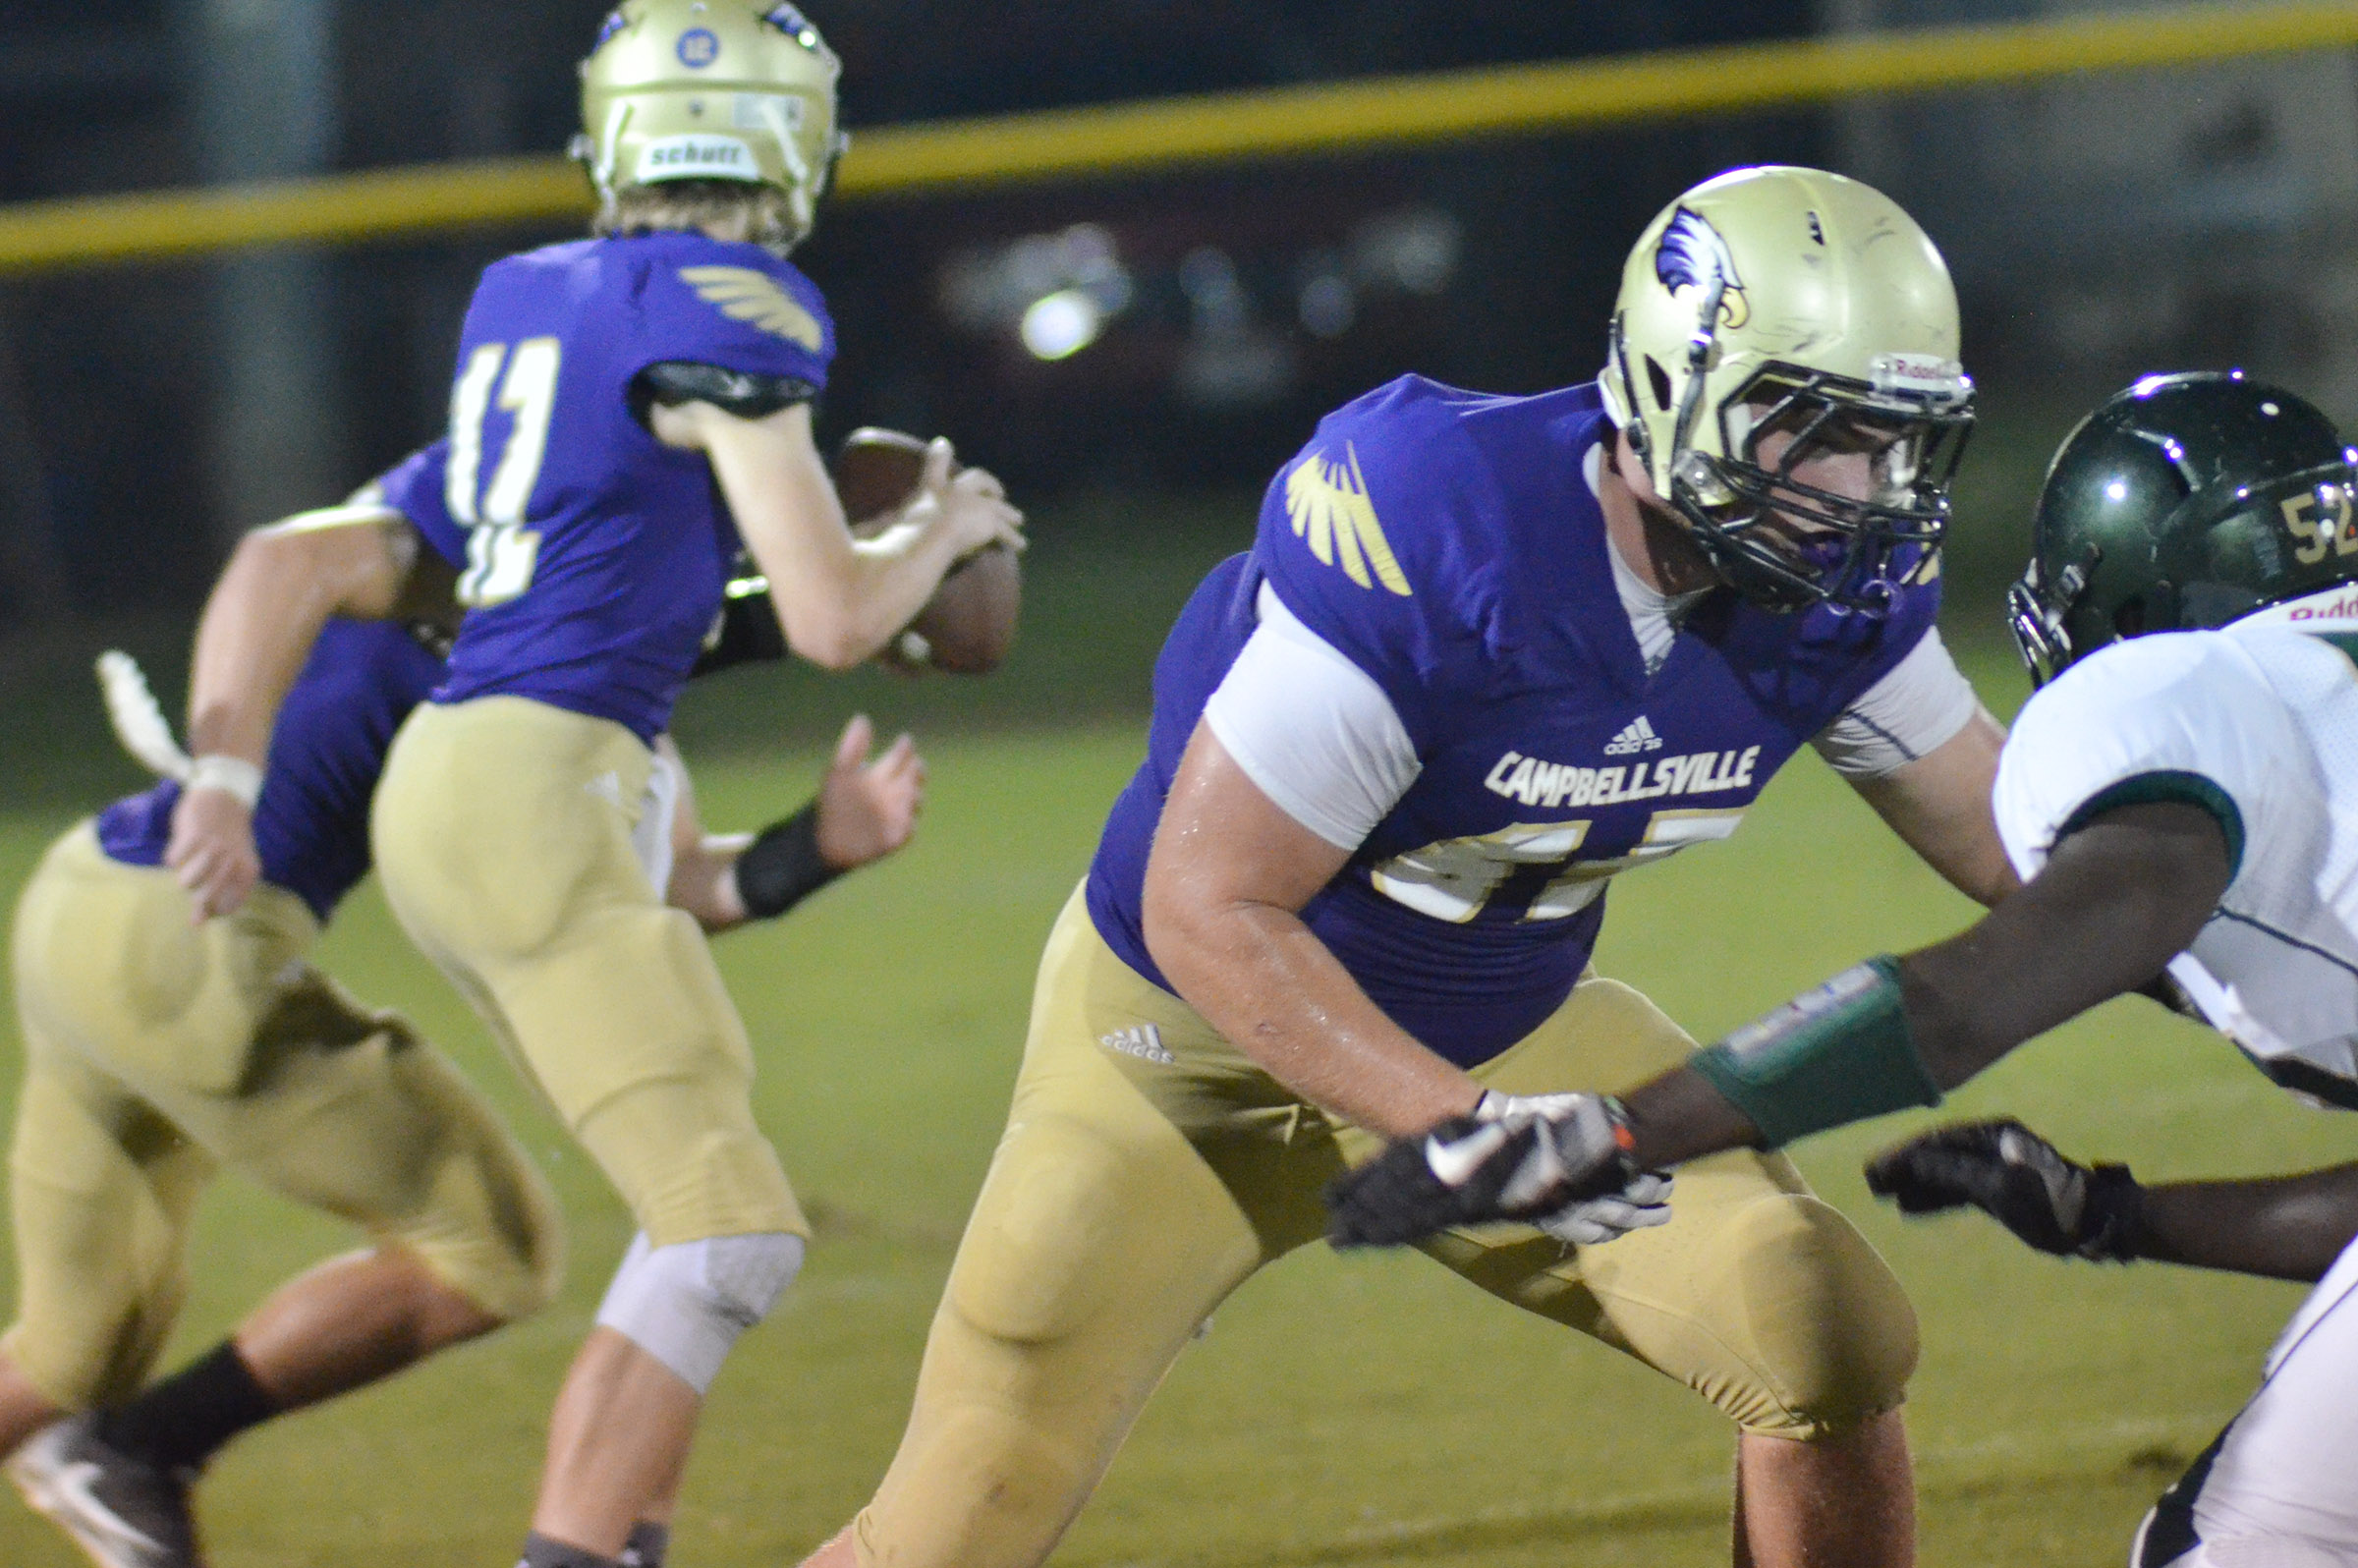 CHS junior Lane Bottoms tackles.